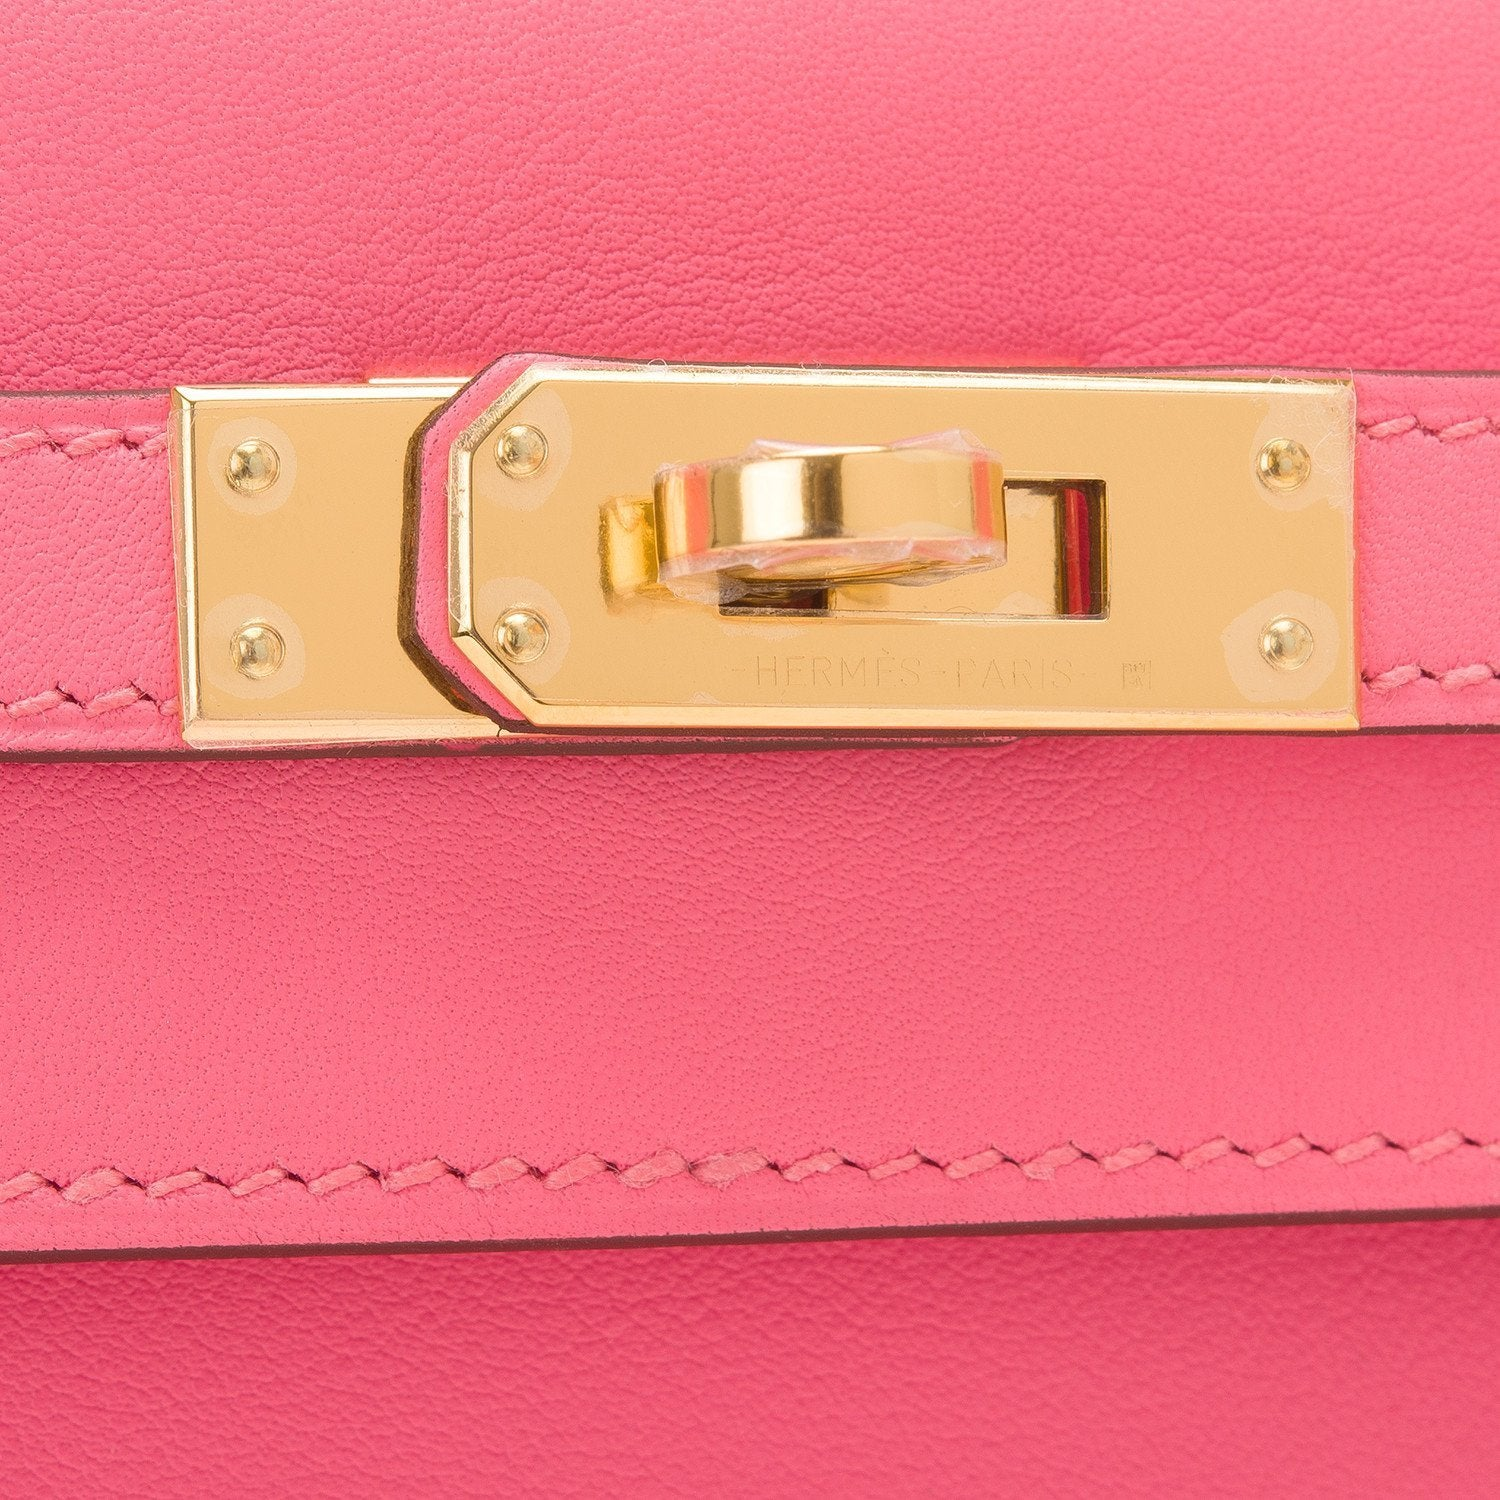 Hermes Rose Azalea Swift Mini Kelly Pochette Handbags